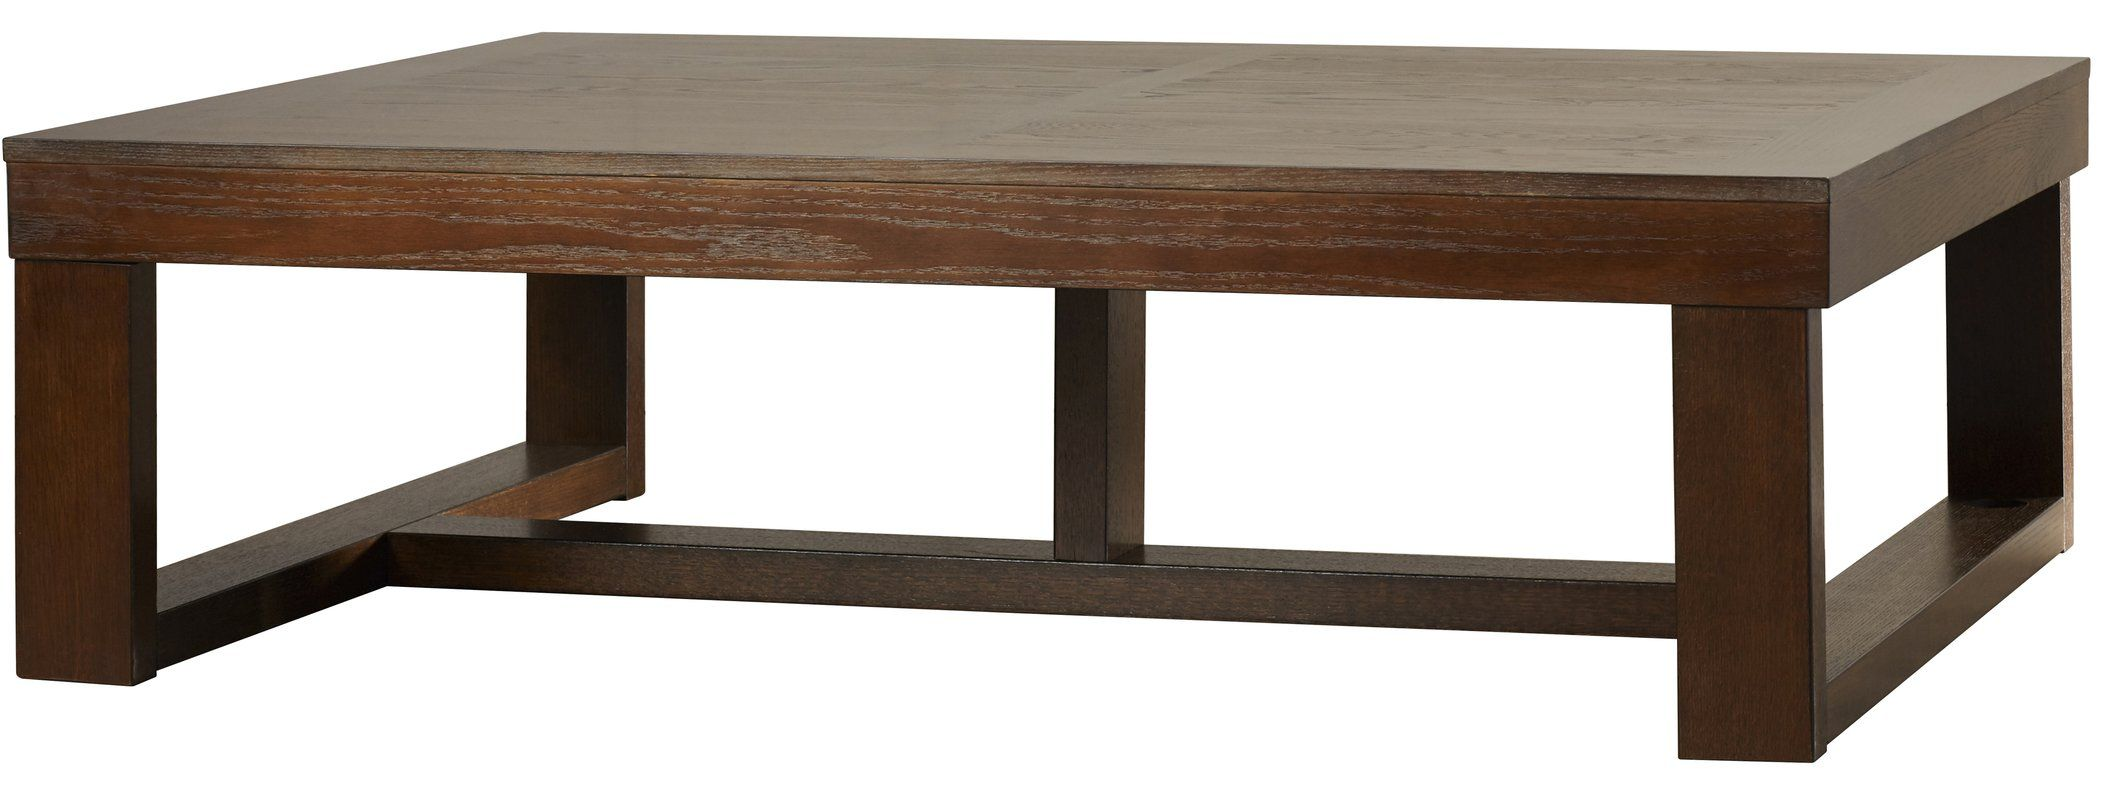 - Cranmore Trestle Coffee Table Cool Coffee Tables, Furniture